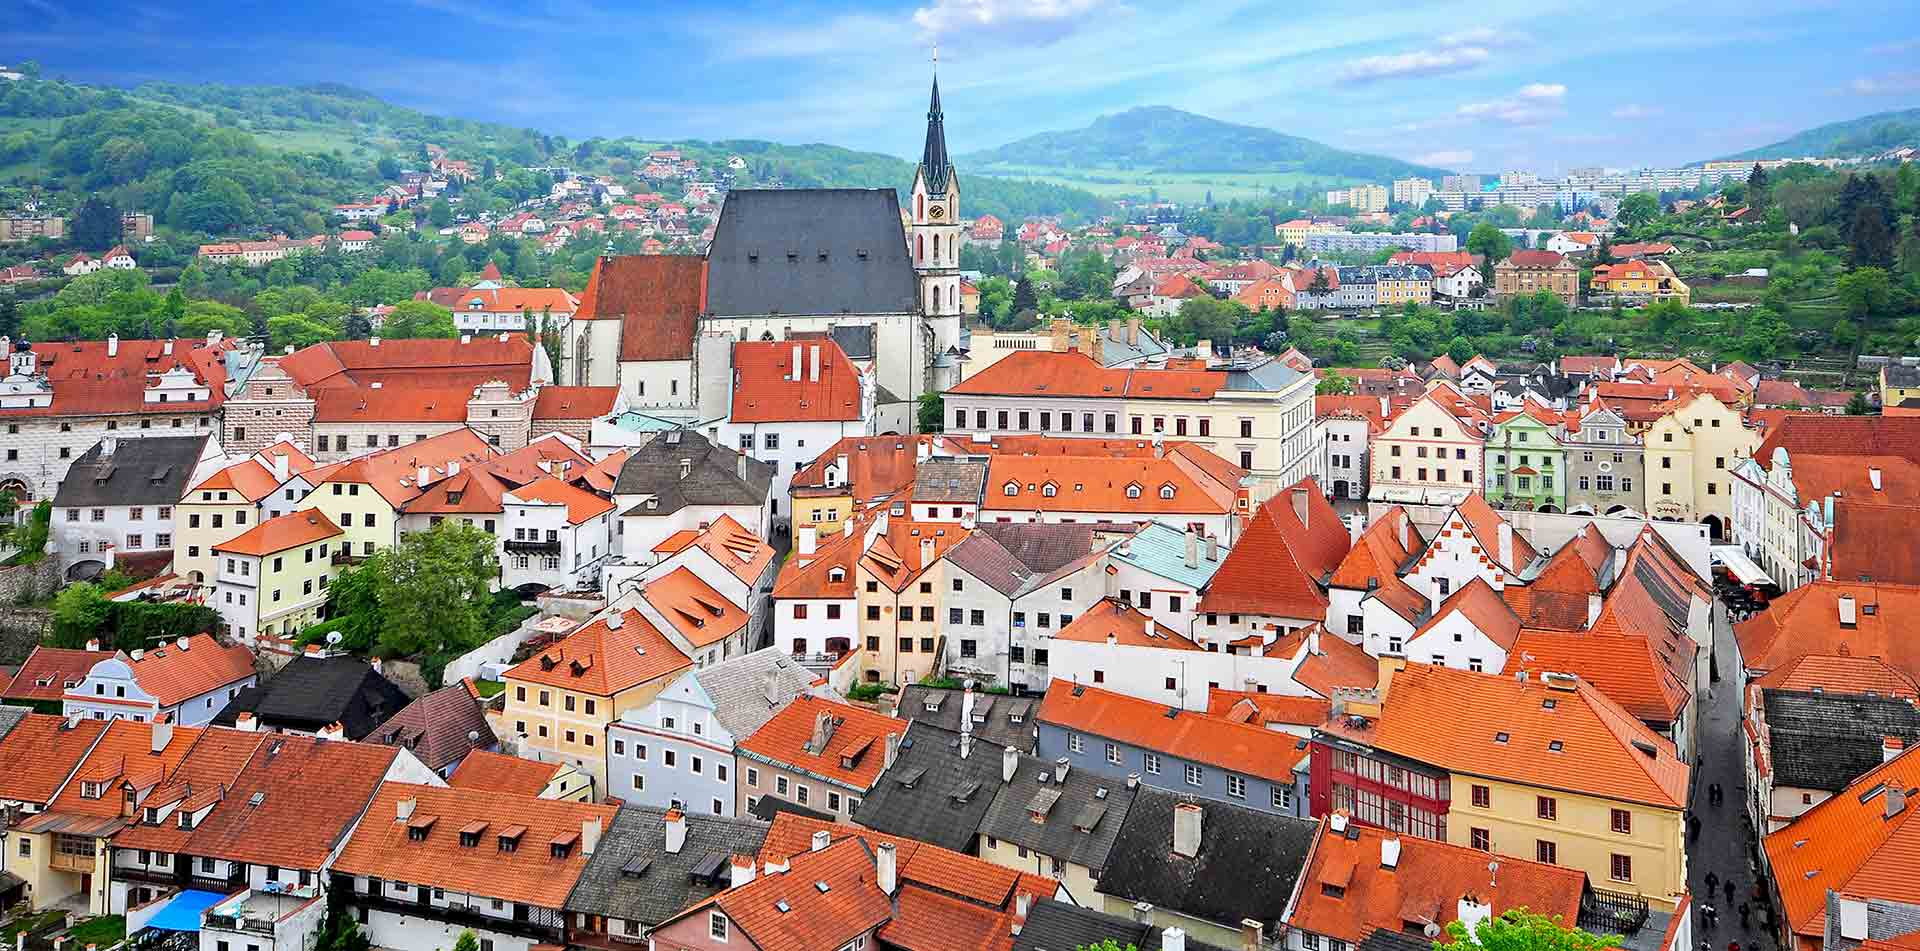 Europe Czech Republic Cesky Krumlov city skyline with mountains - luxury vacation destinations